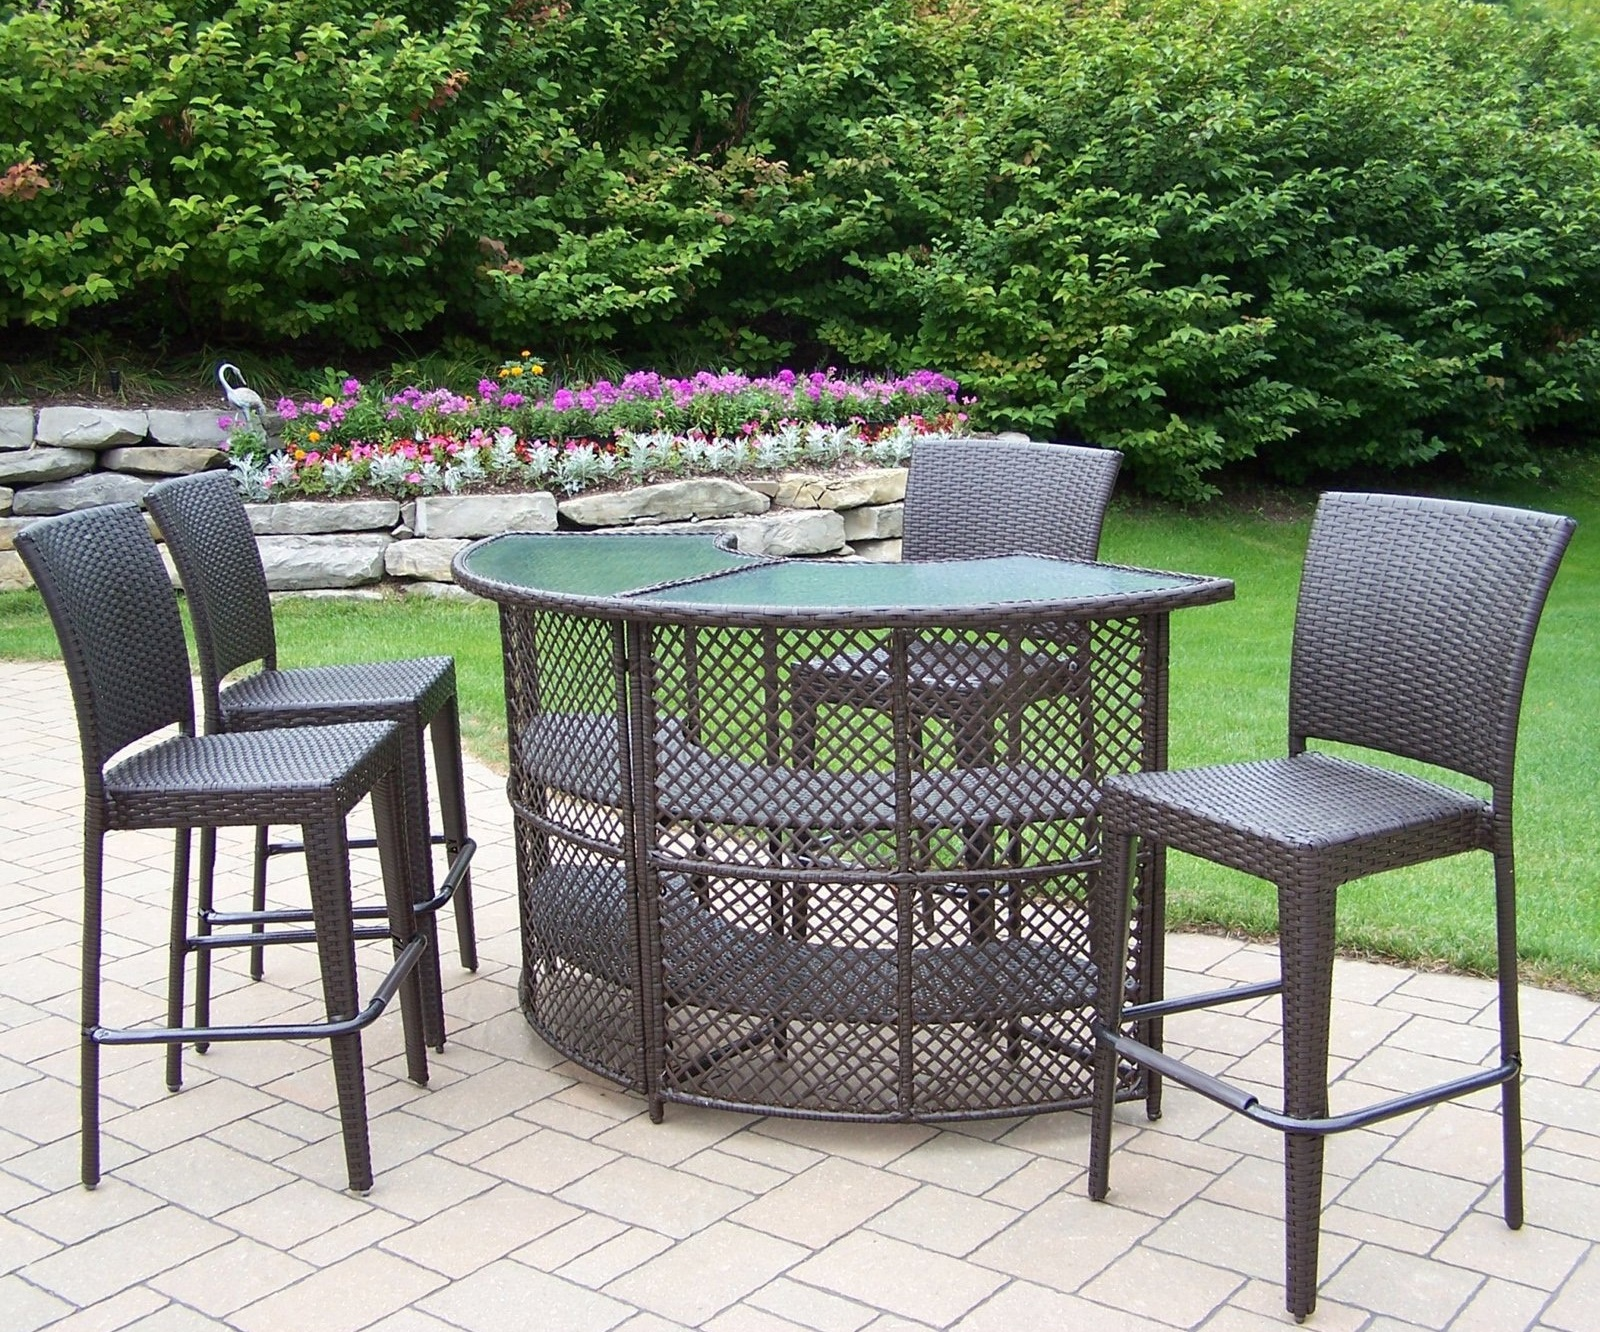 Outdoor patio bar sets image for Outdoor patio furniture sets